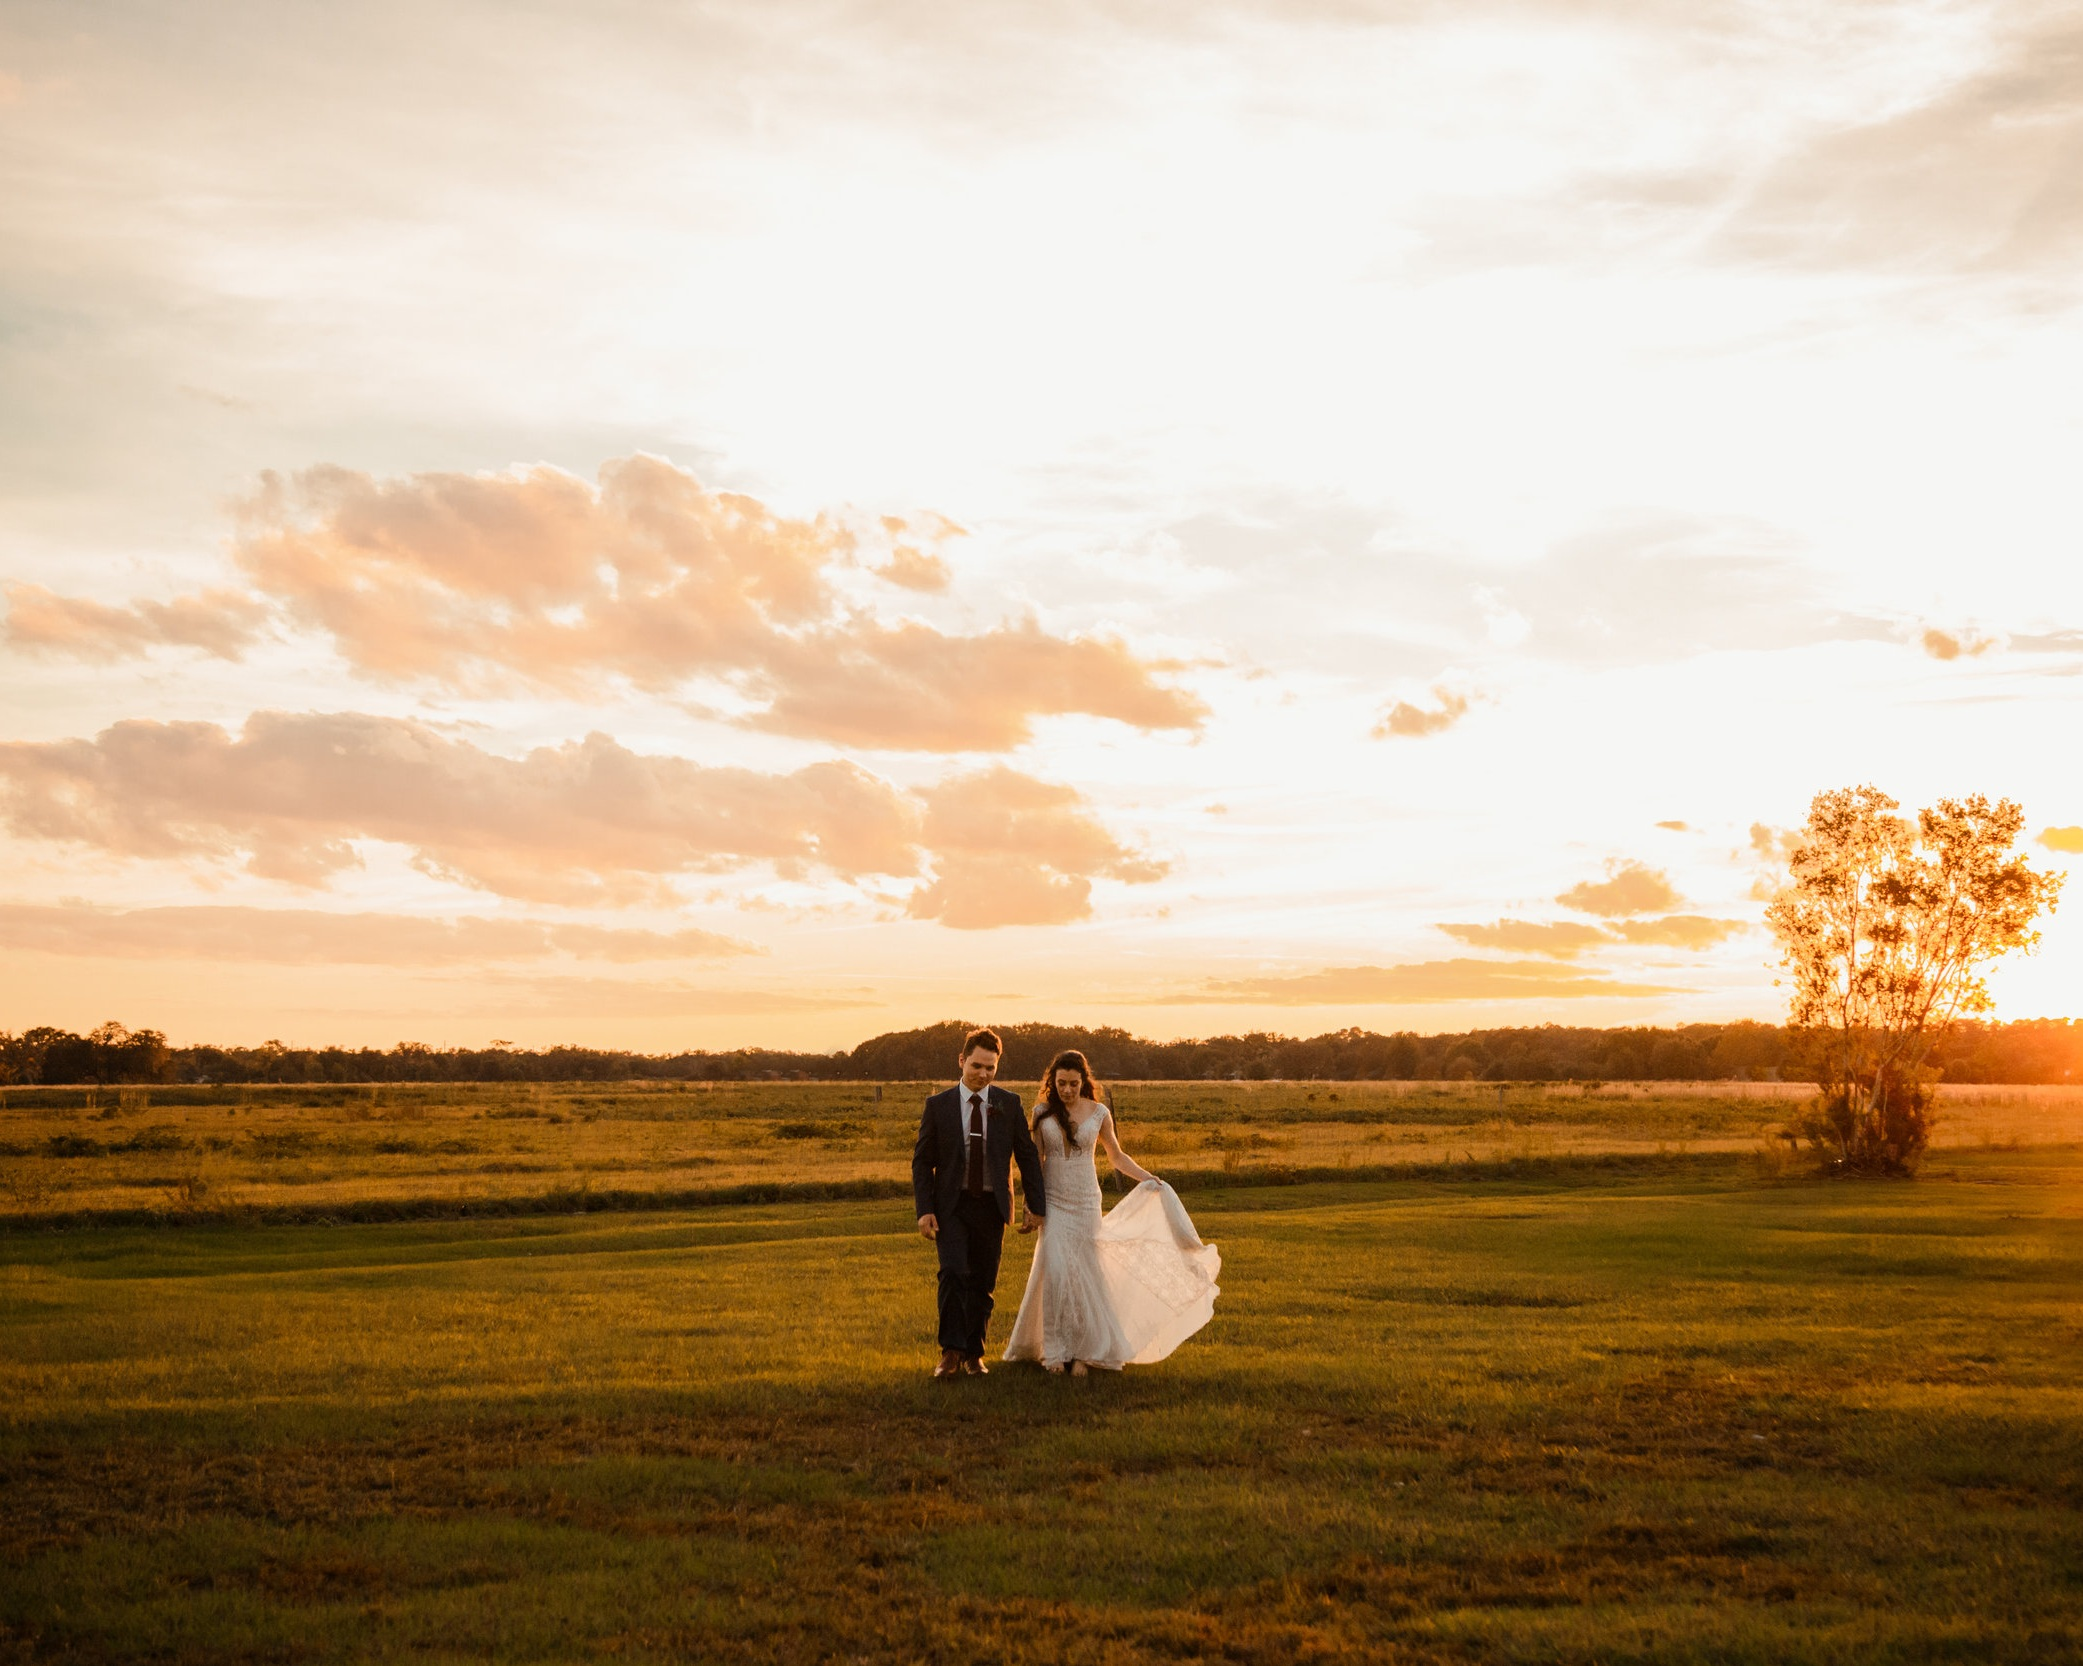 THE KRAUS WEDDING - Saint Cloud, FL